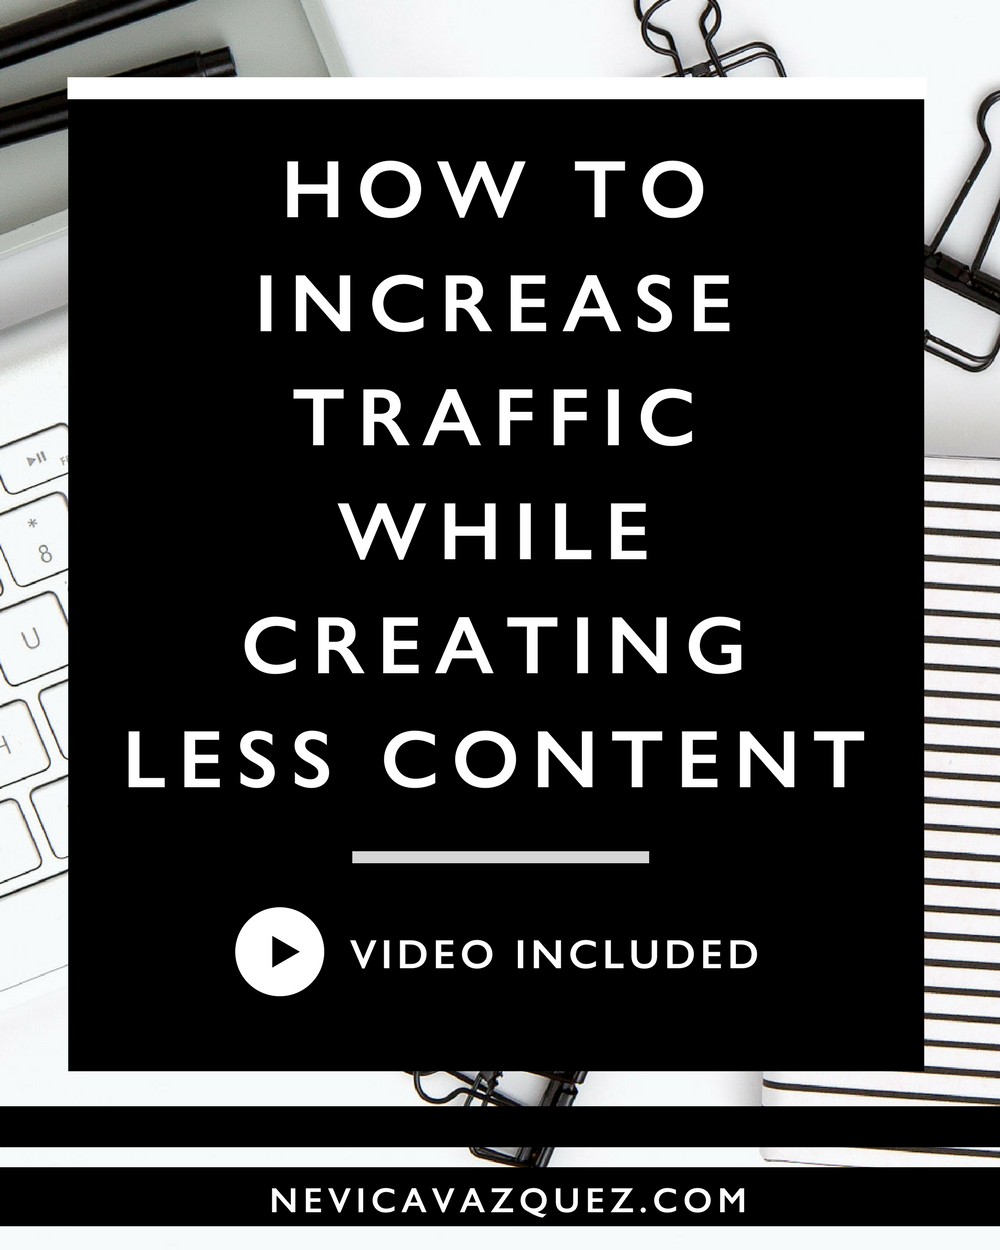 How To Increase Traffic While Creating Less Content